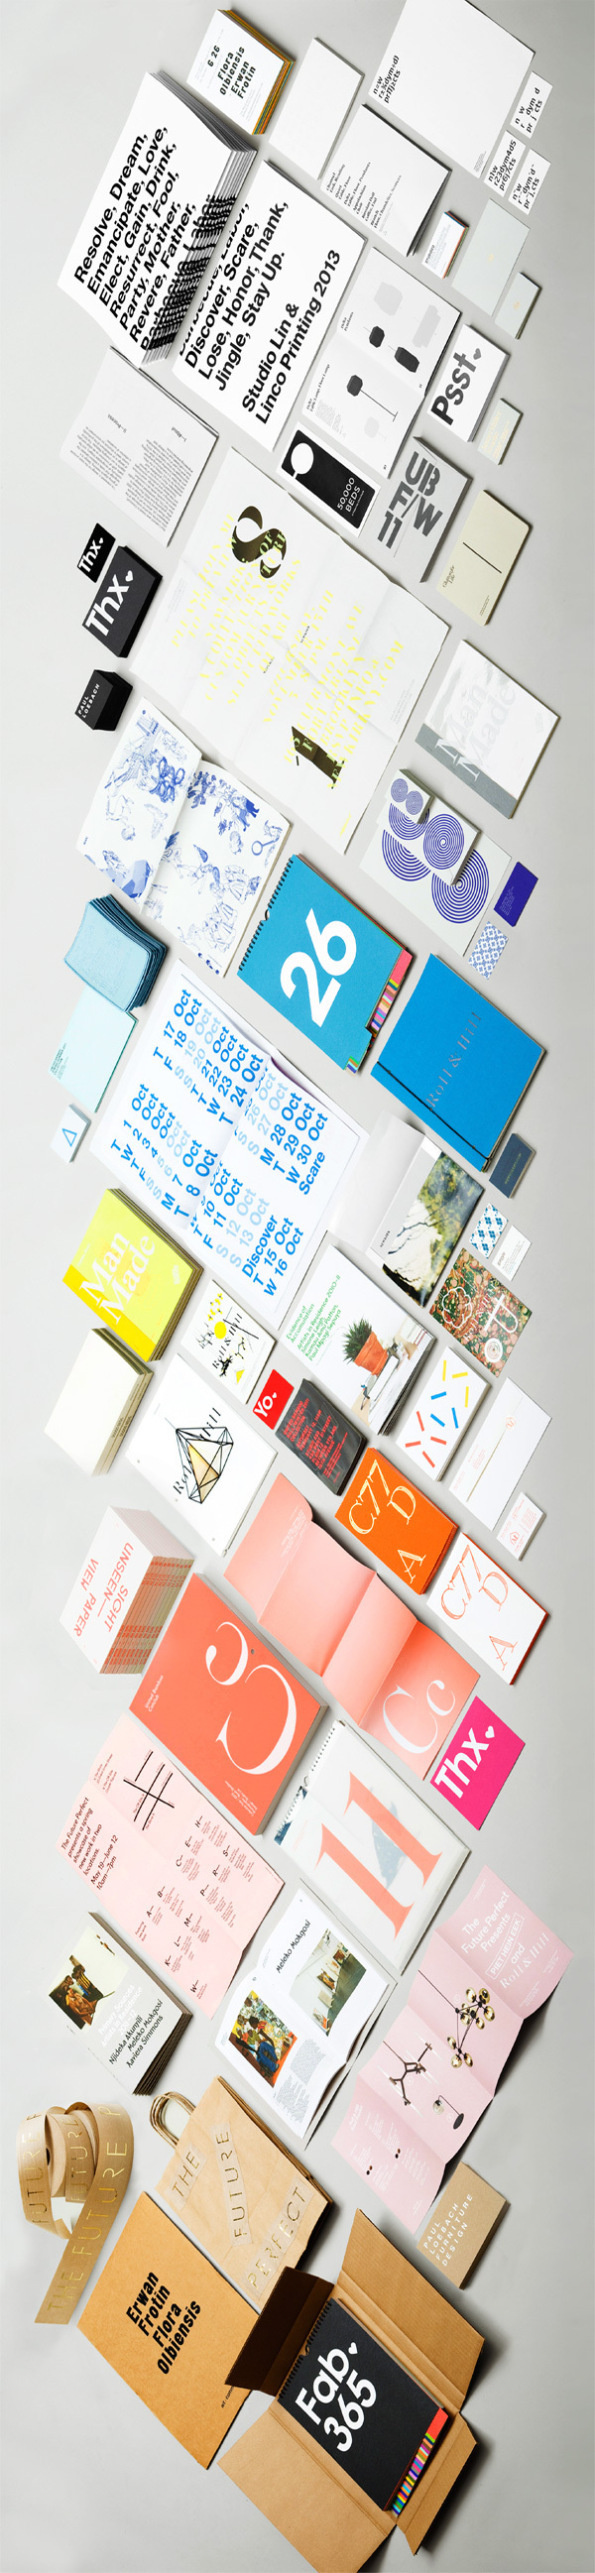 print design #print #design #color #collateral #stationery #type #paper #organized #typography